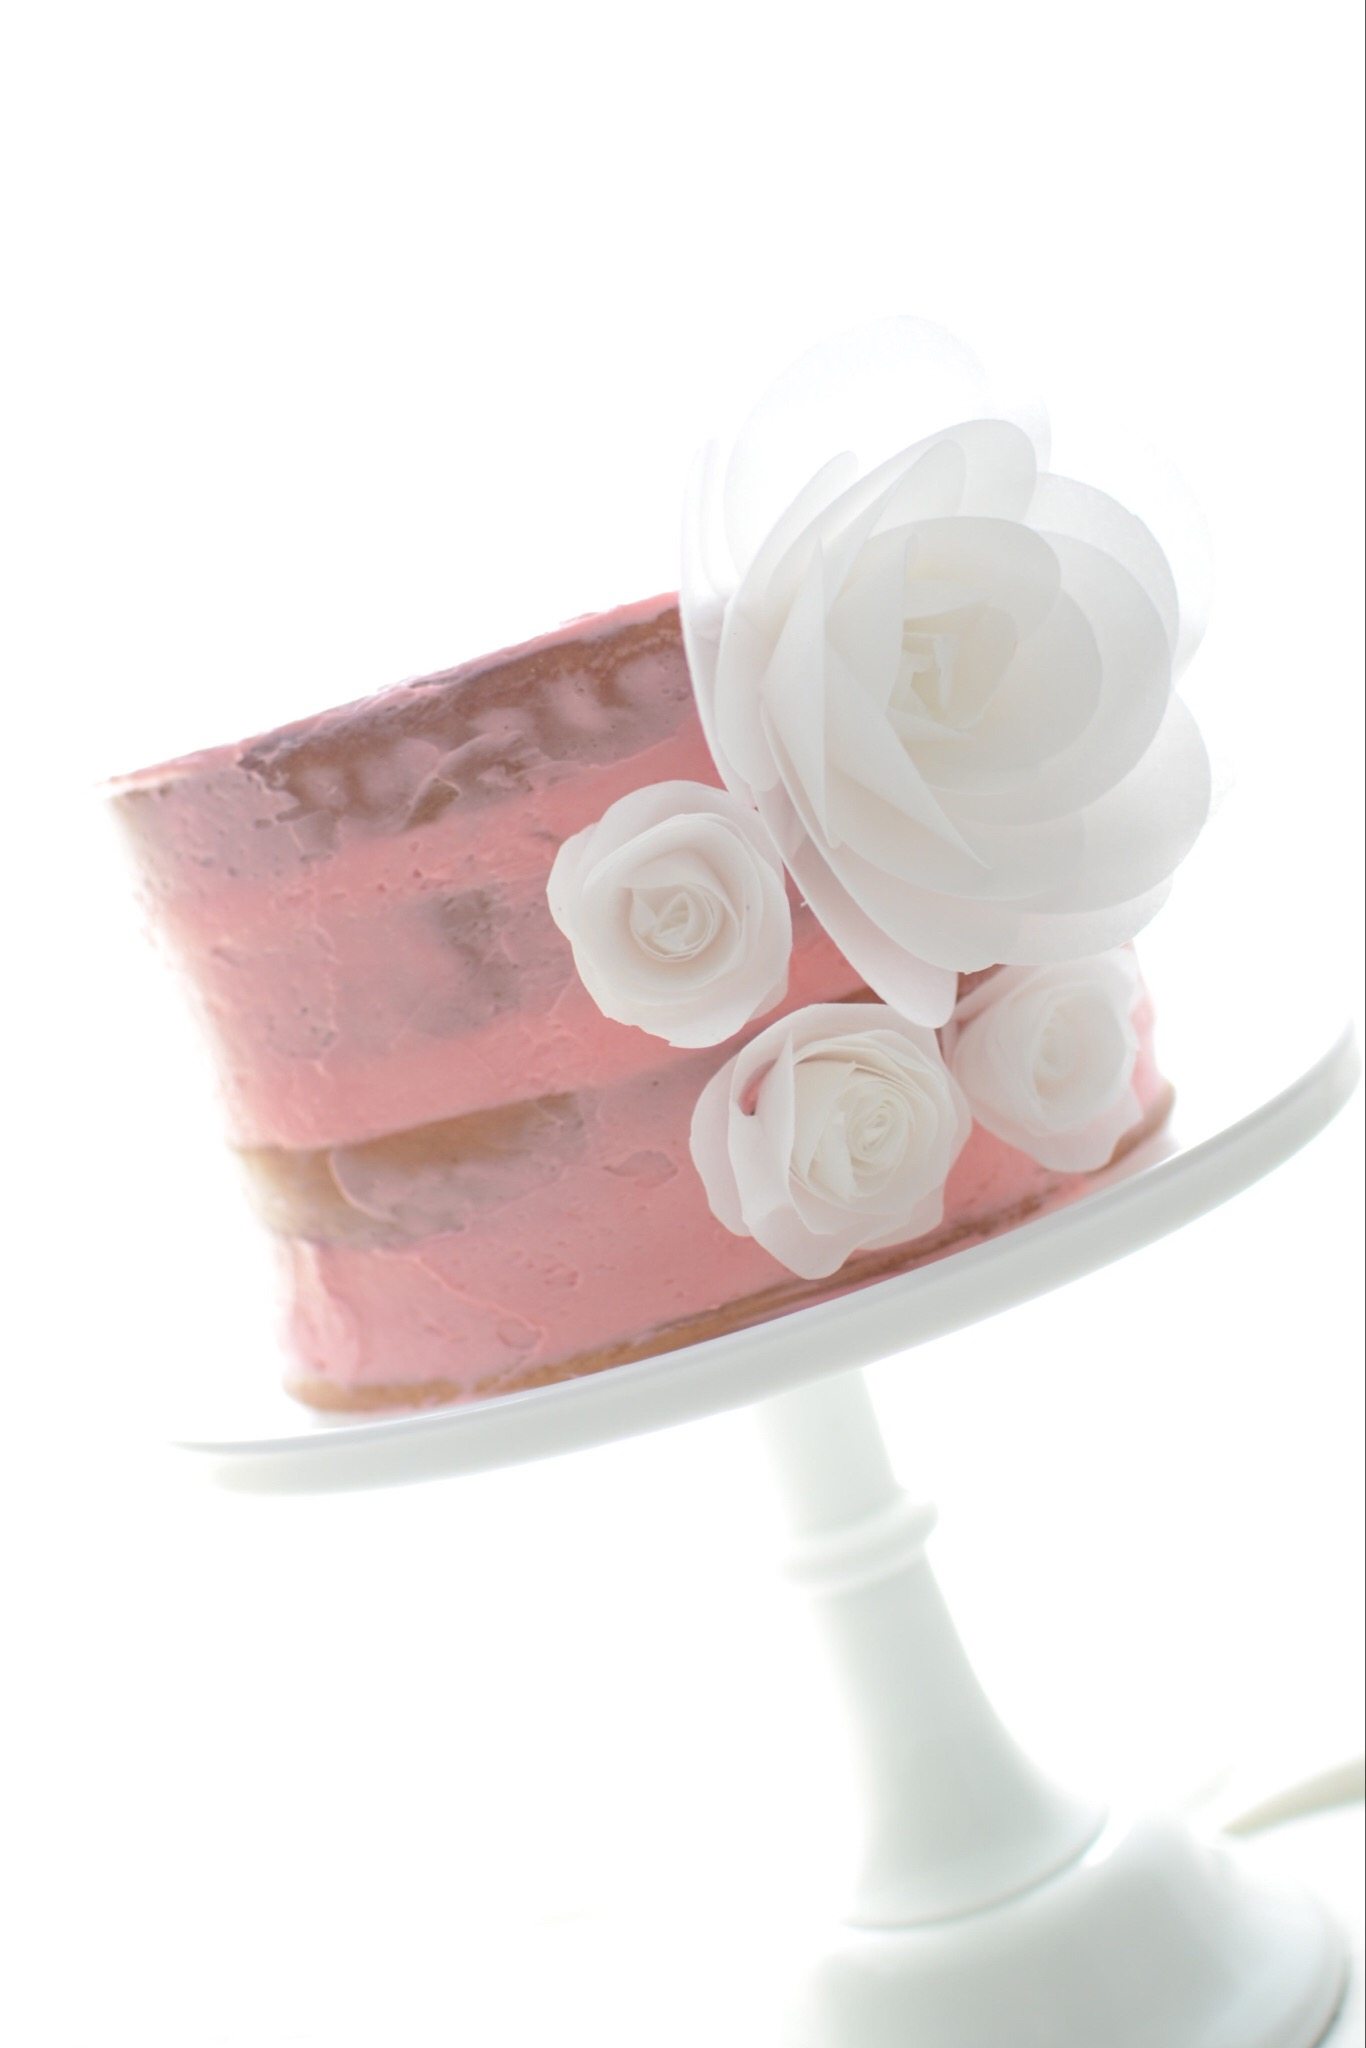 Simple Buttercream Cake with Flower